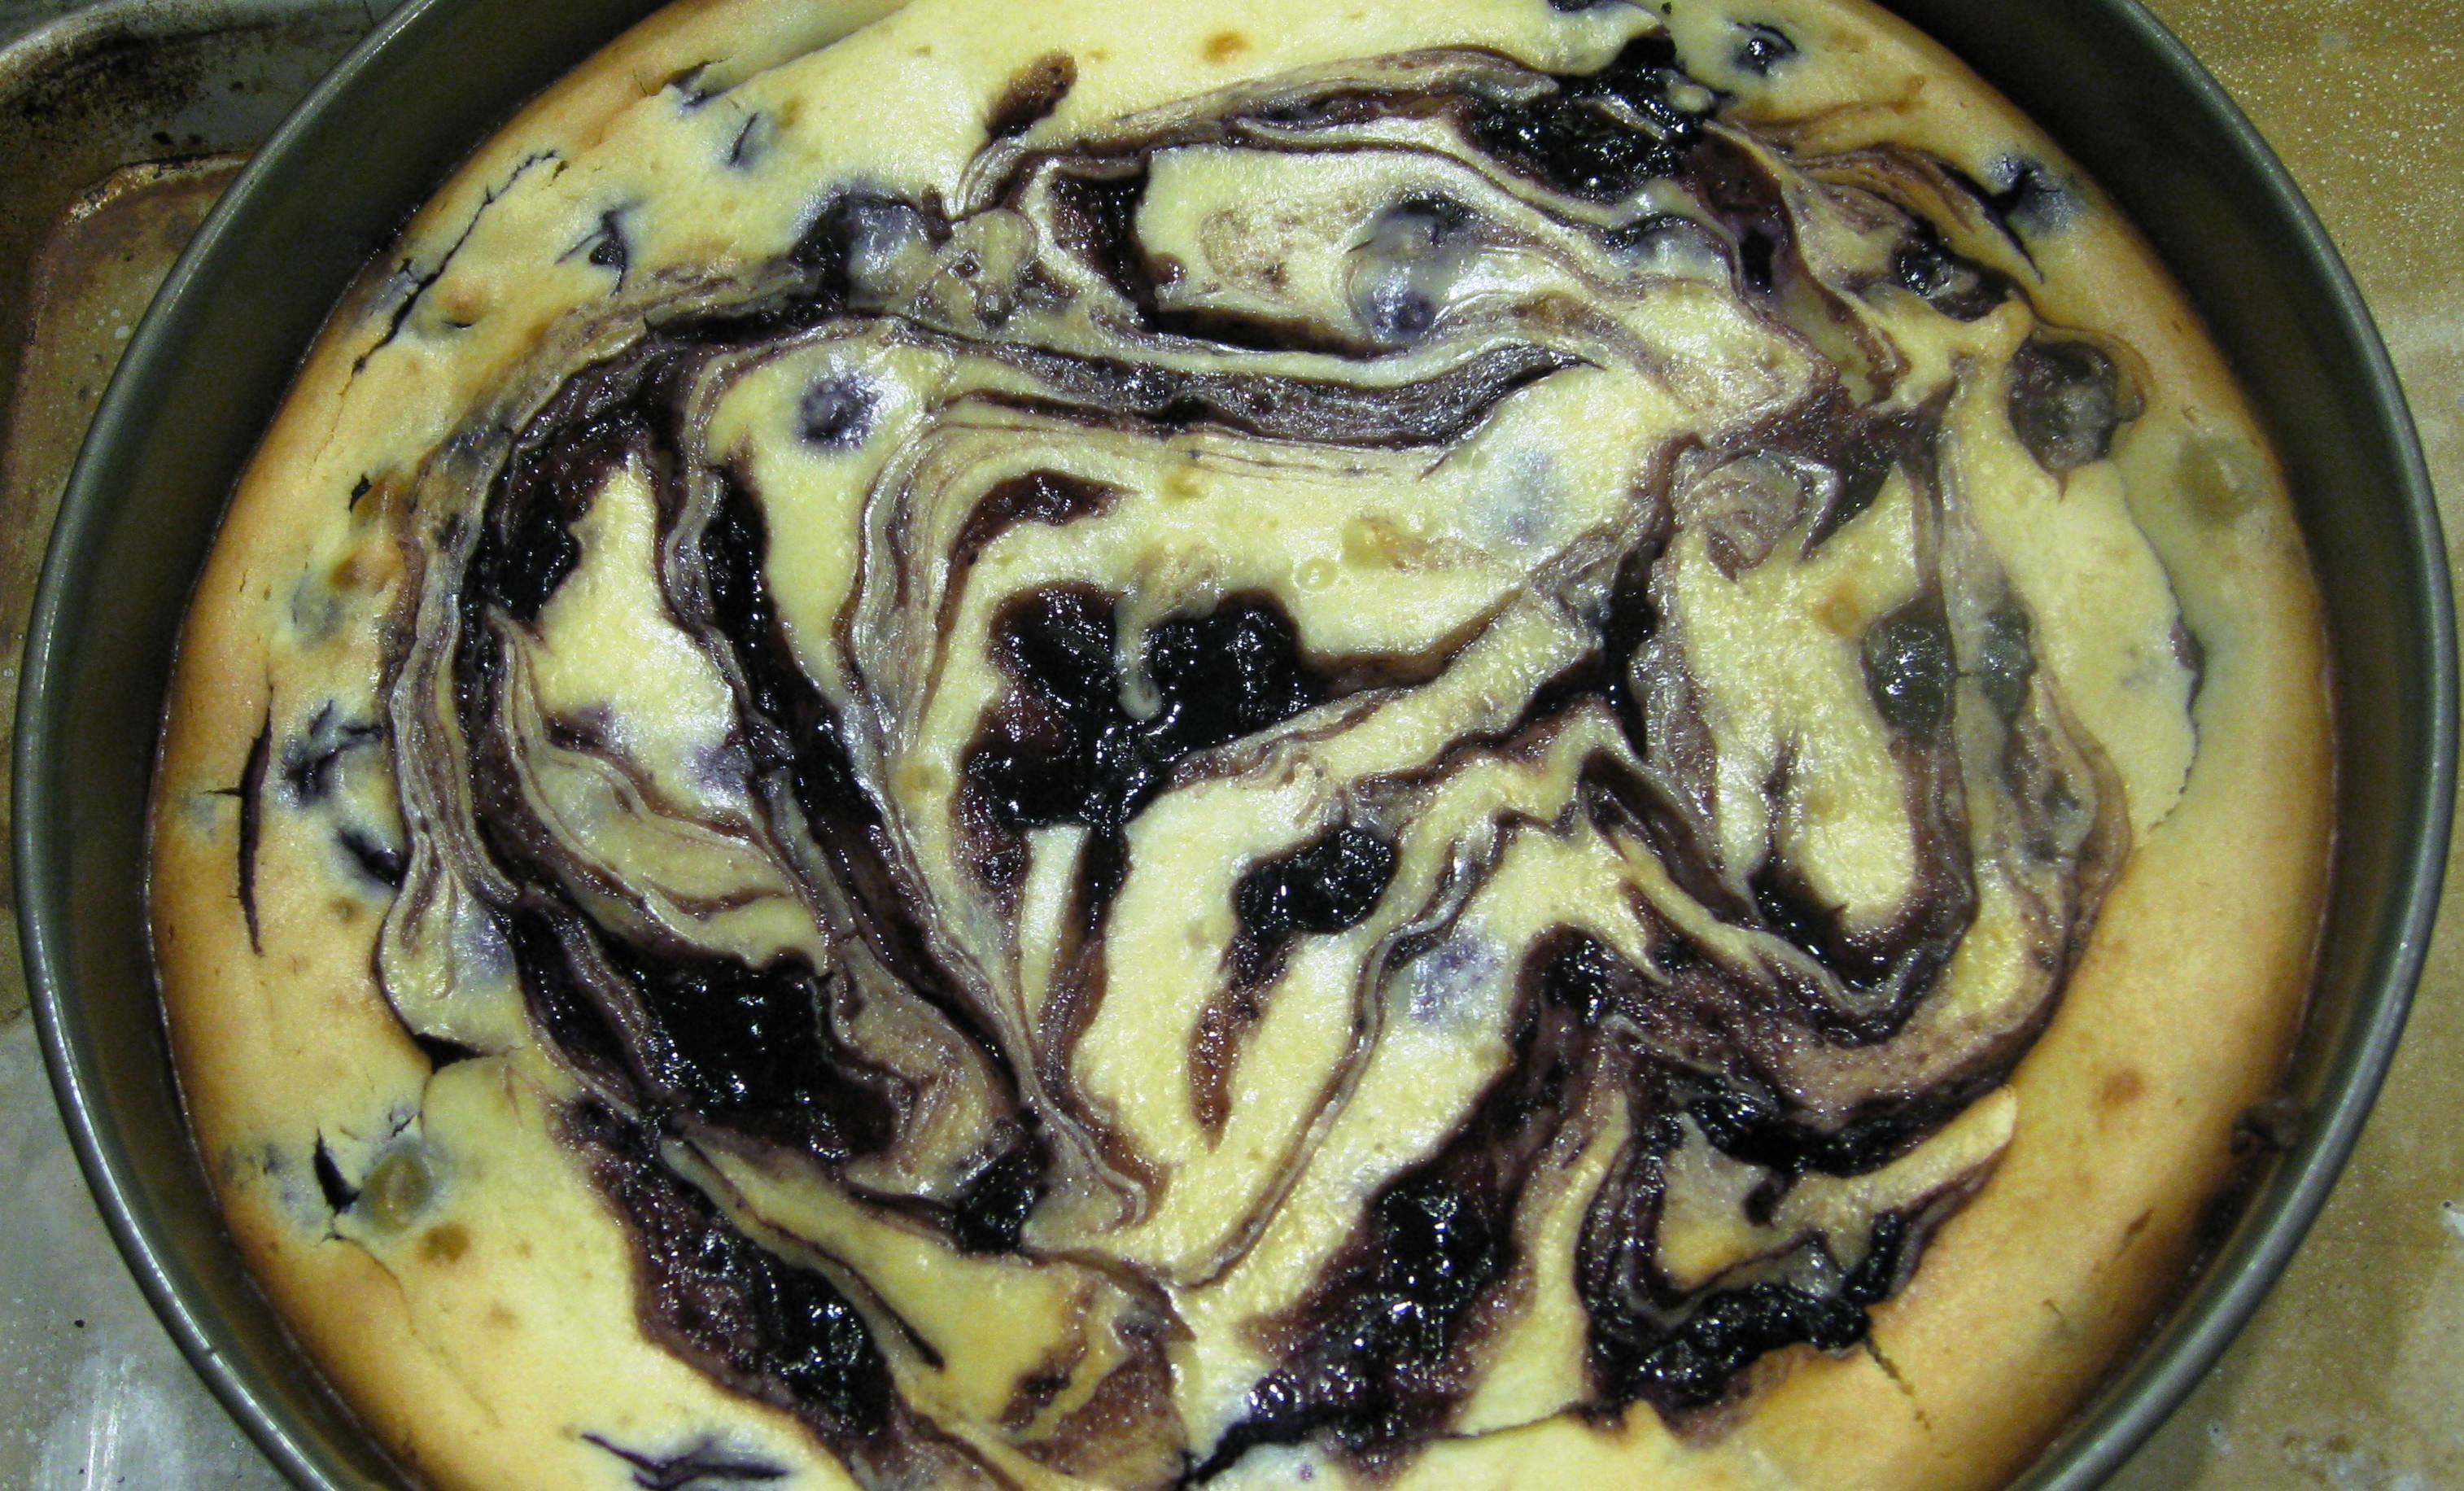 Blueberry lemon cheesecake in pan